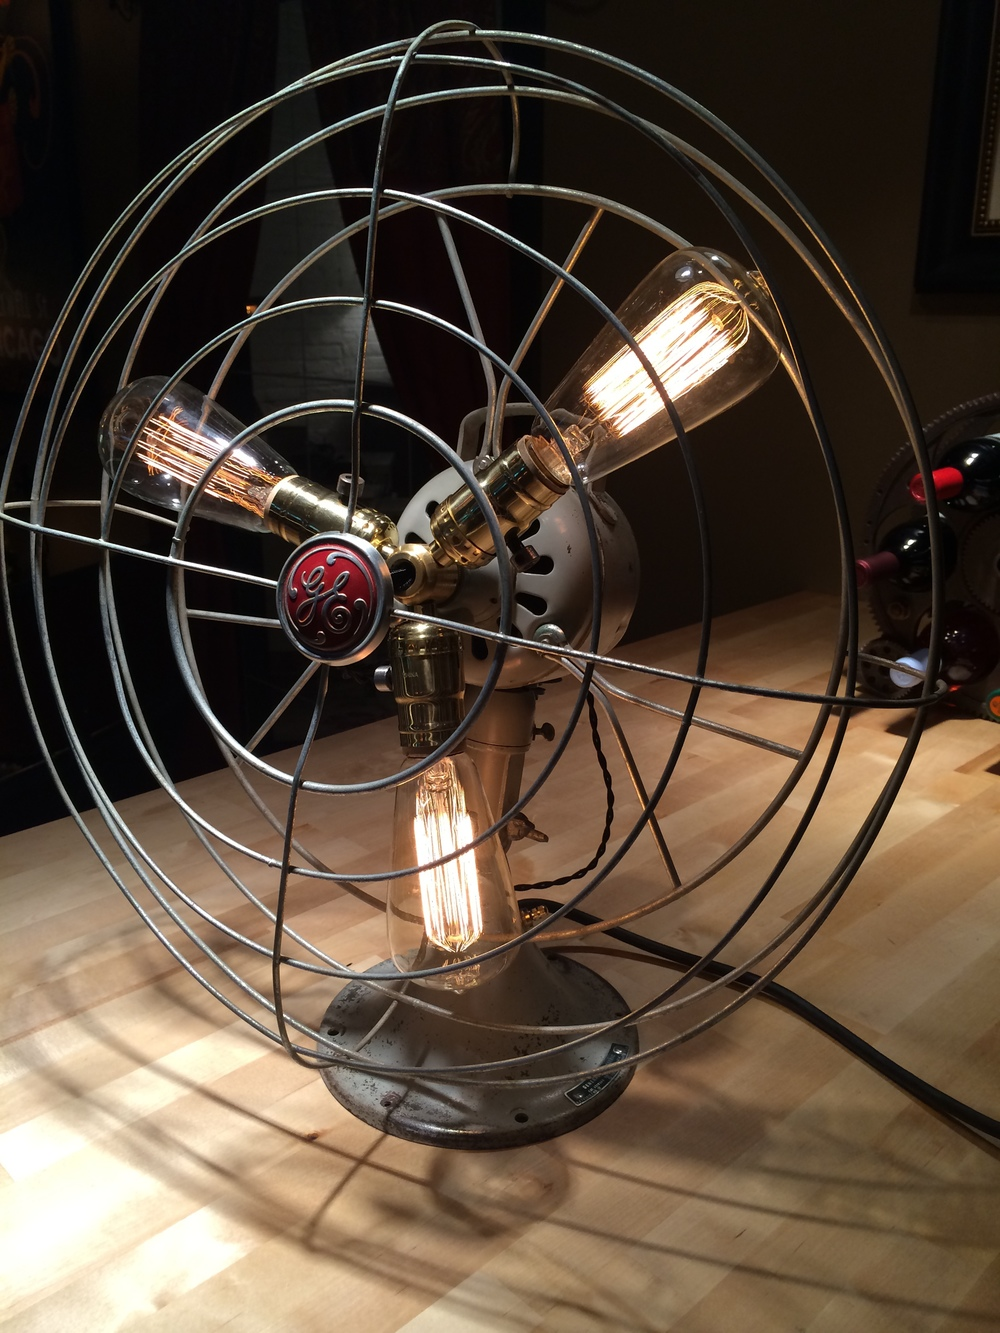 1950's General Electric Fan Lamp - $275